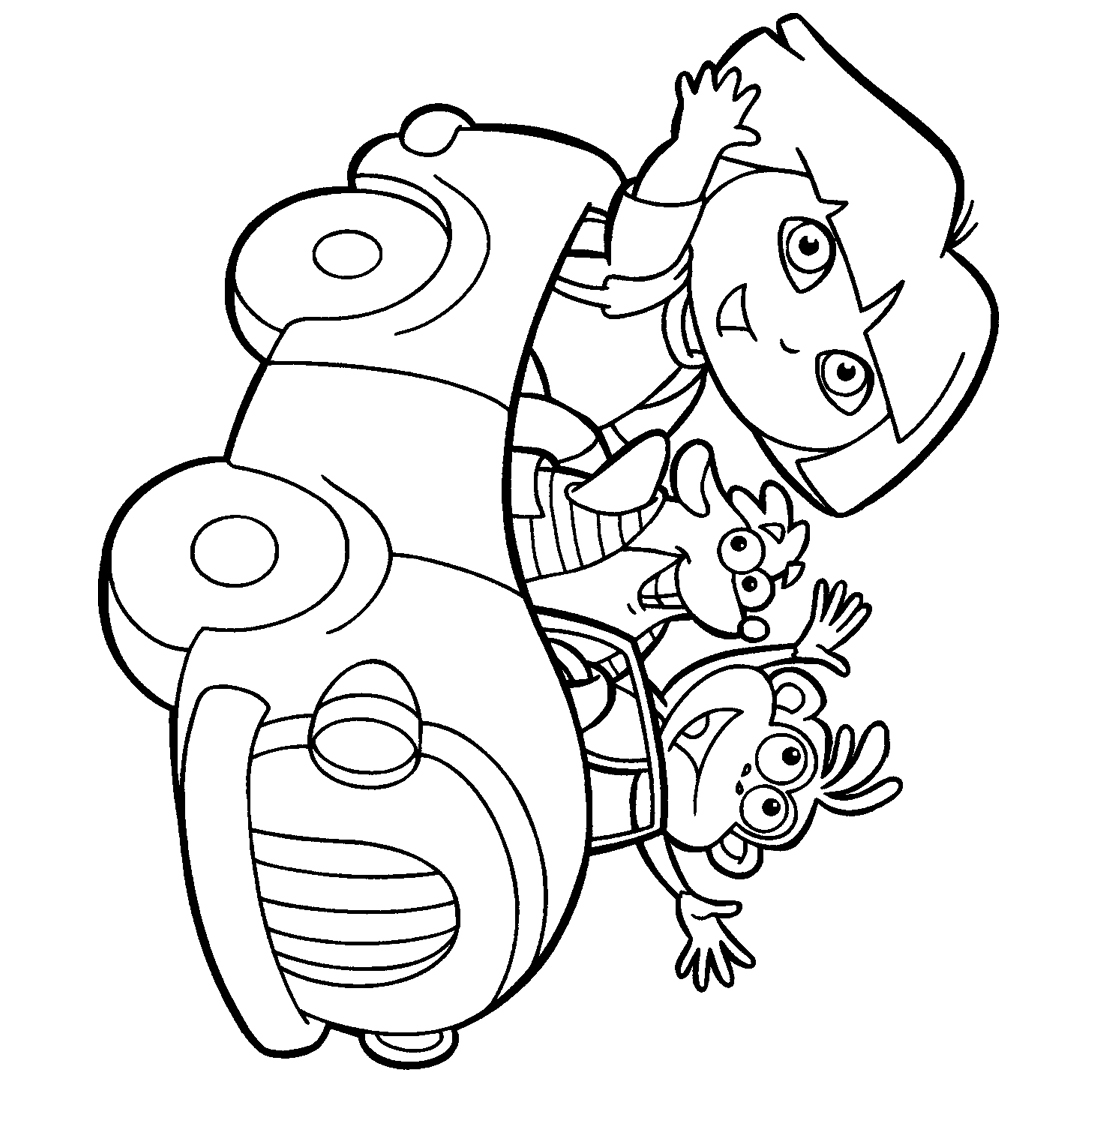 Printable coloring pages for kids   Coloring Pages For Kids   free coloring pages for toddlers